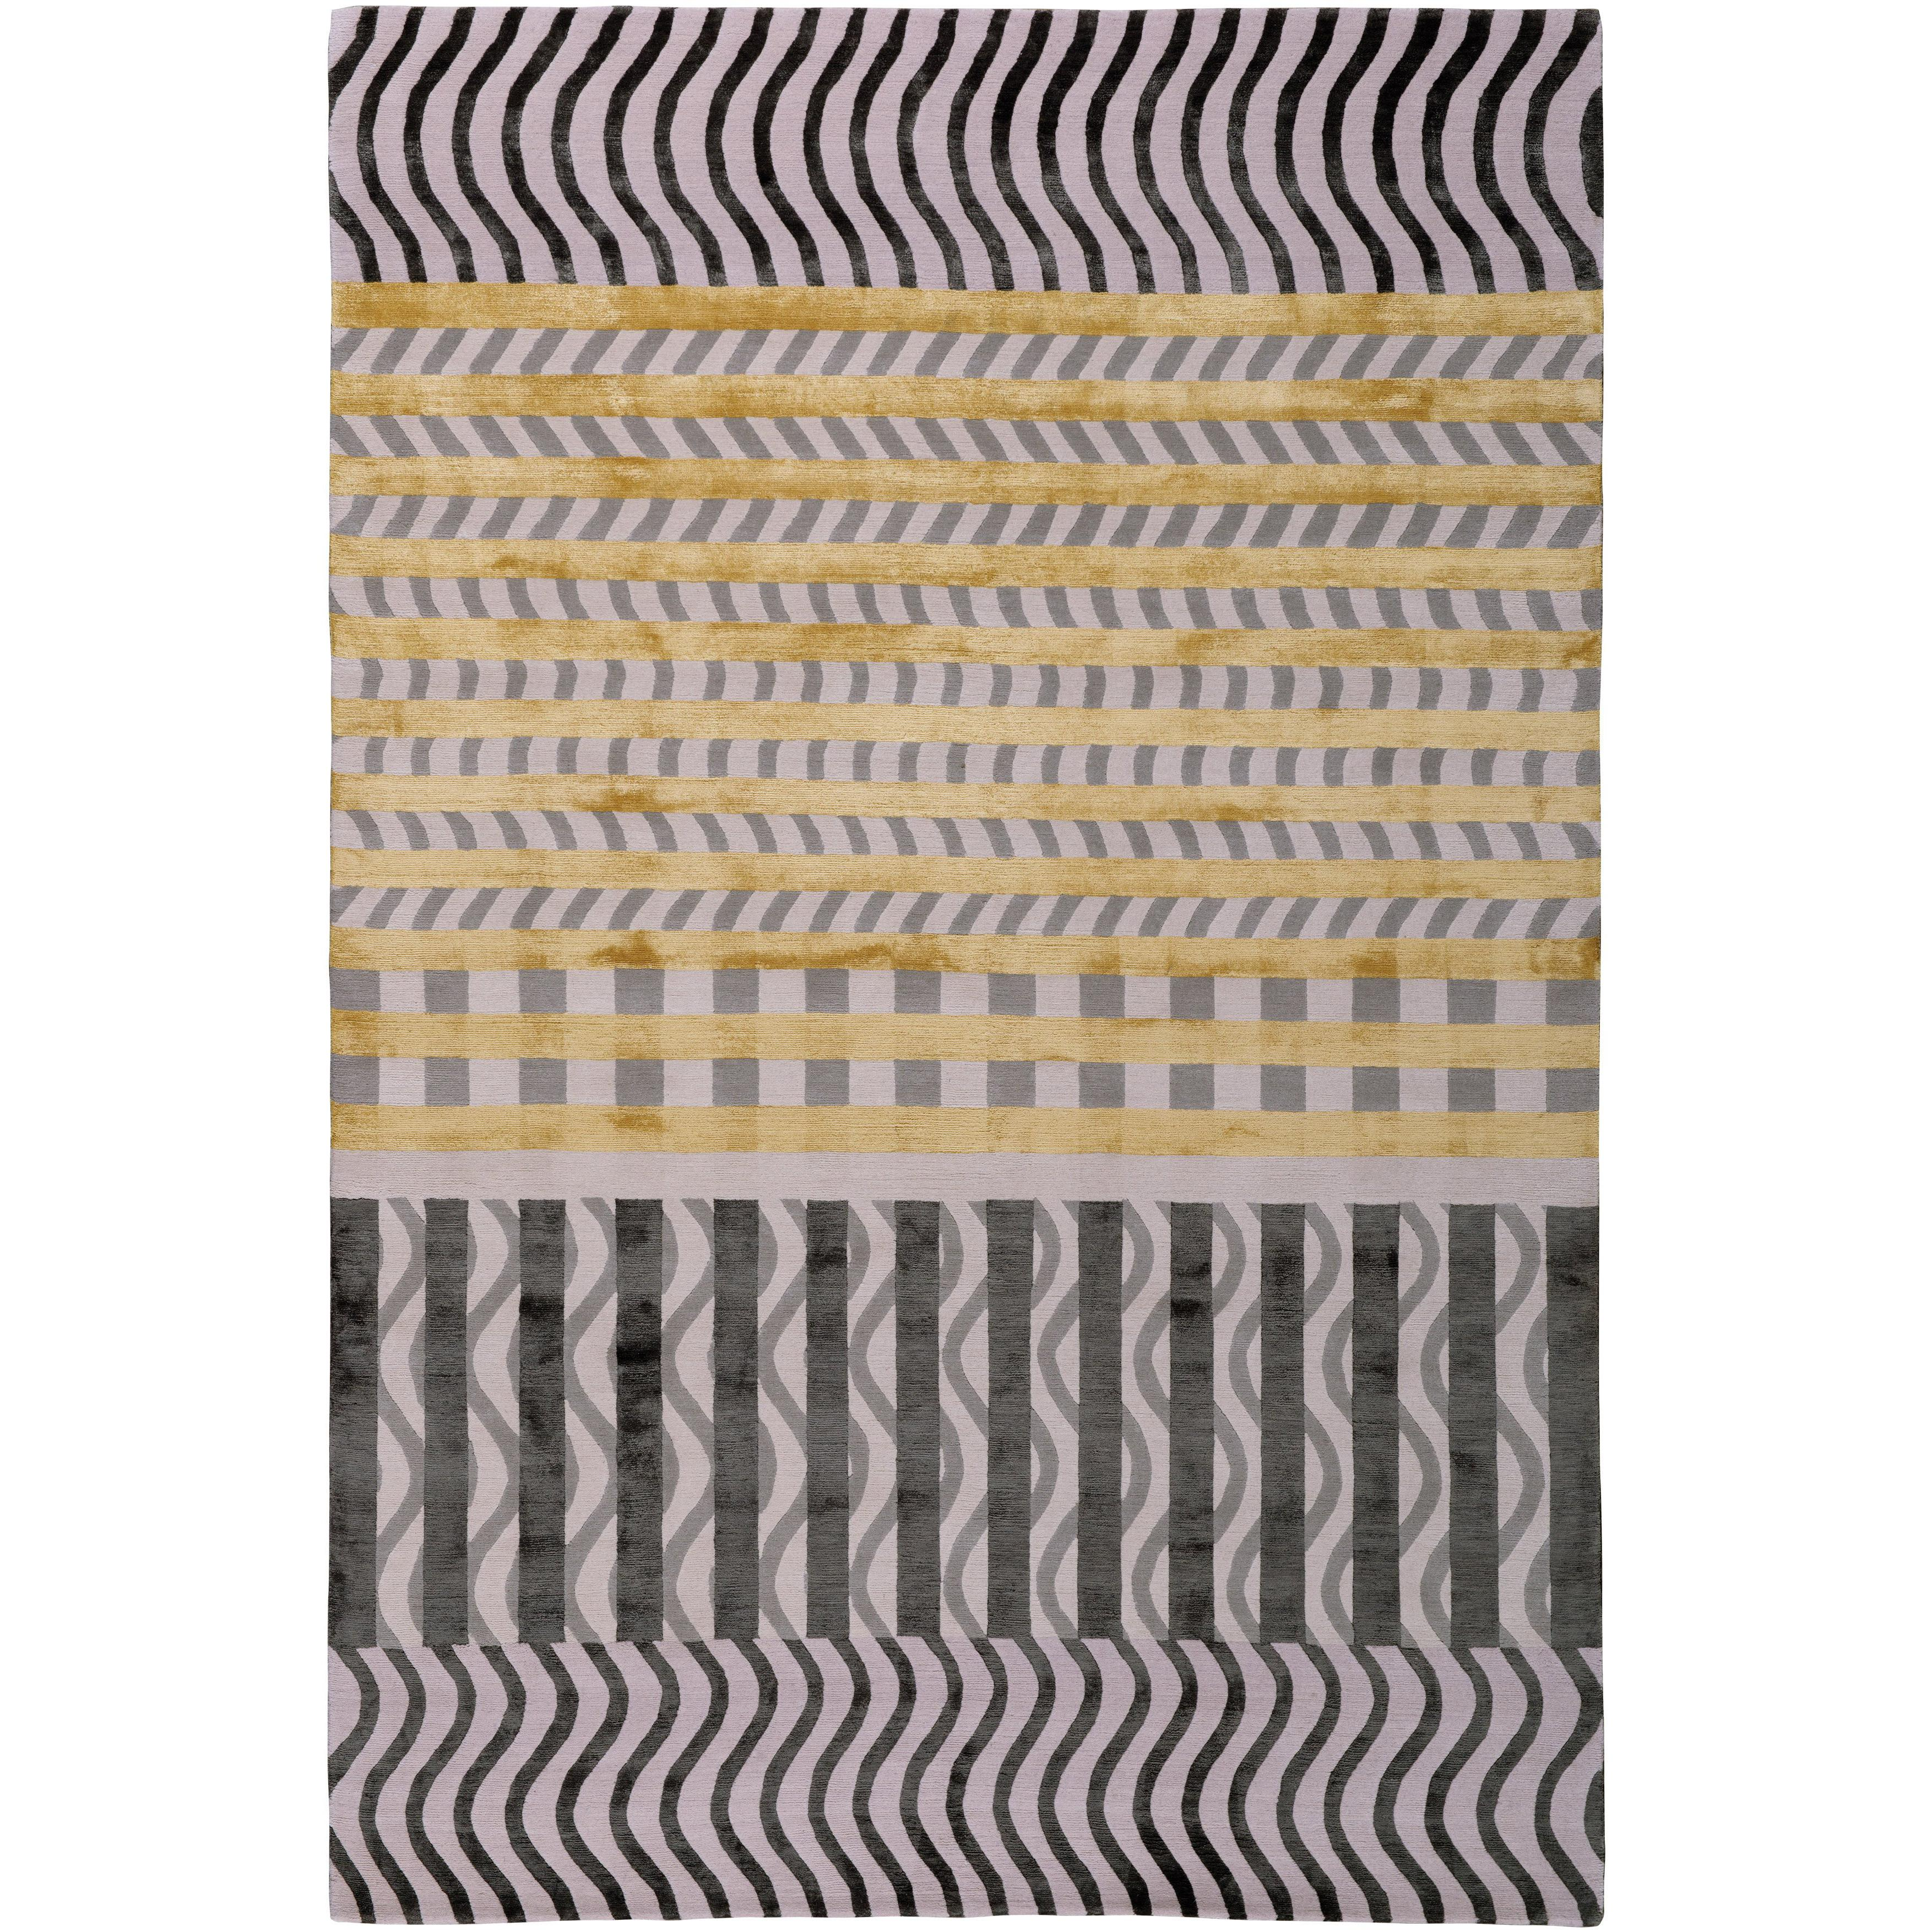 Wave Construct Hand-Knotted 10x8 Rug in Wool and Silk by Christopher Kane